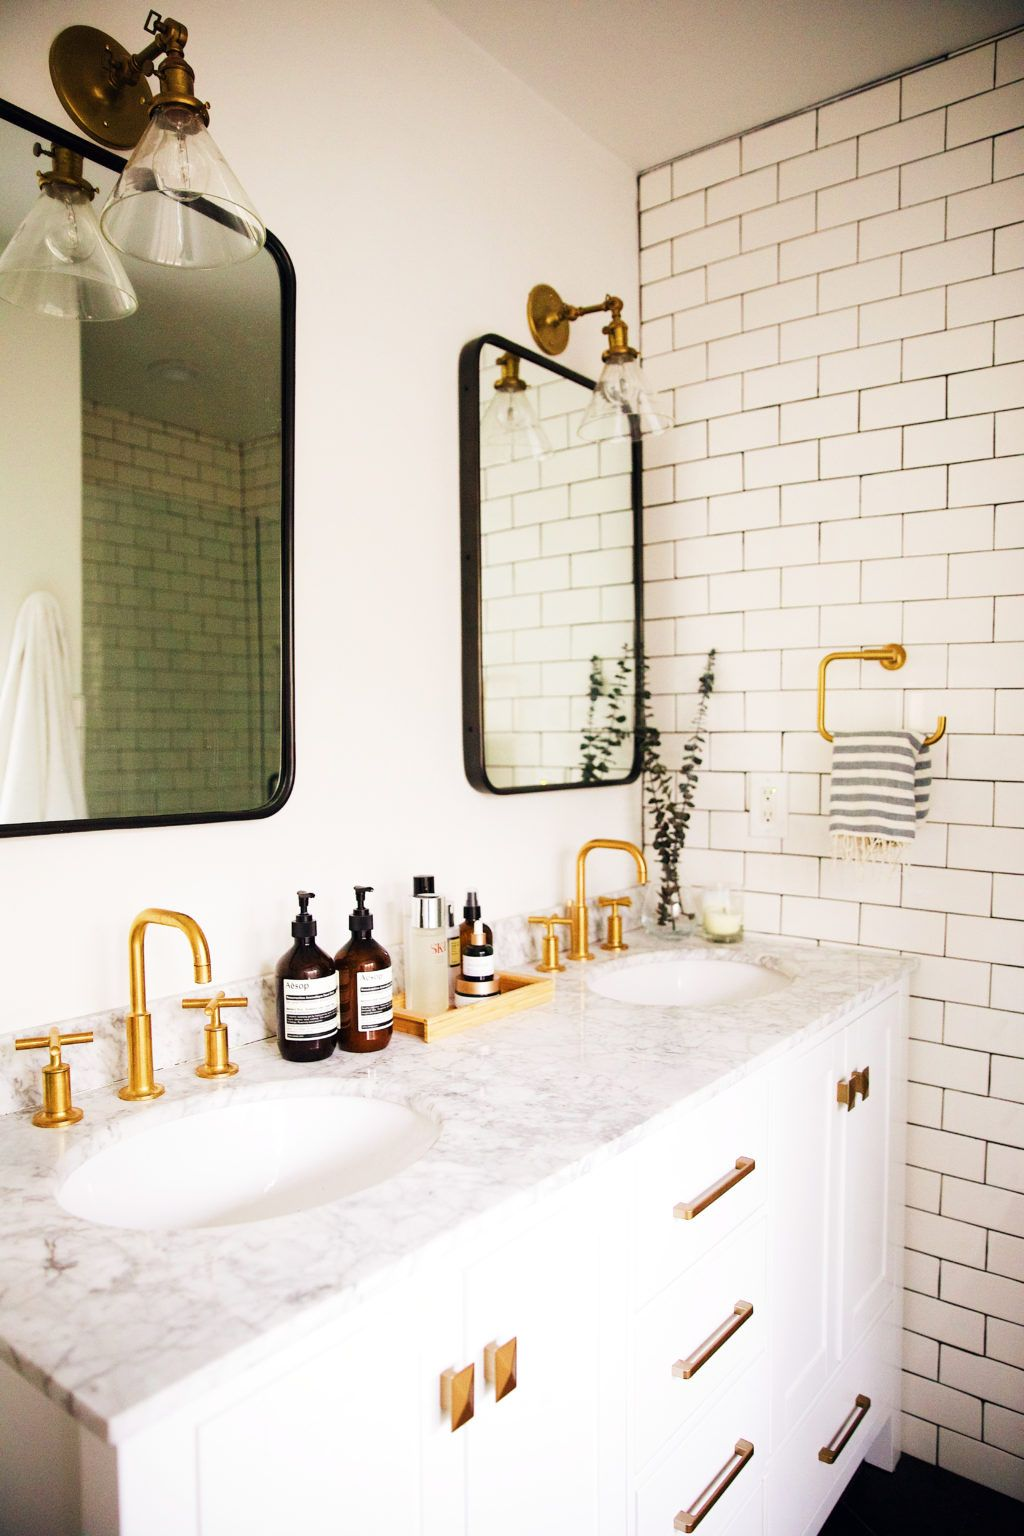 Bathroom Design Trends for 2018 | h o m e s | Pinterest | Design ...